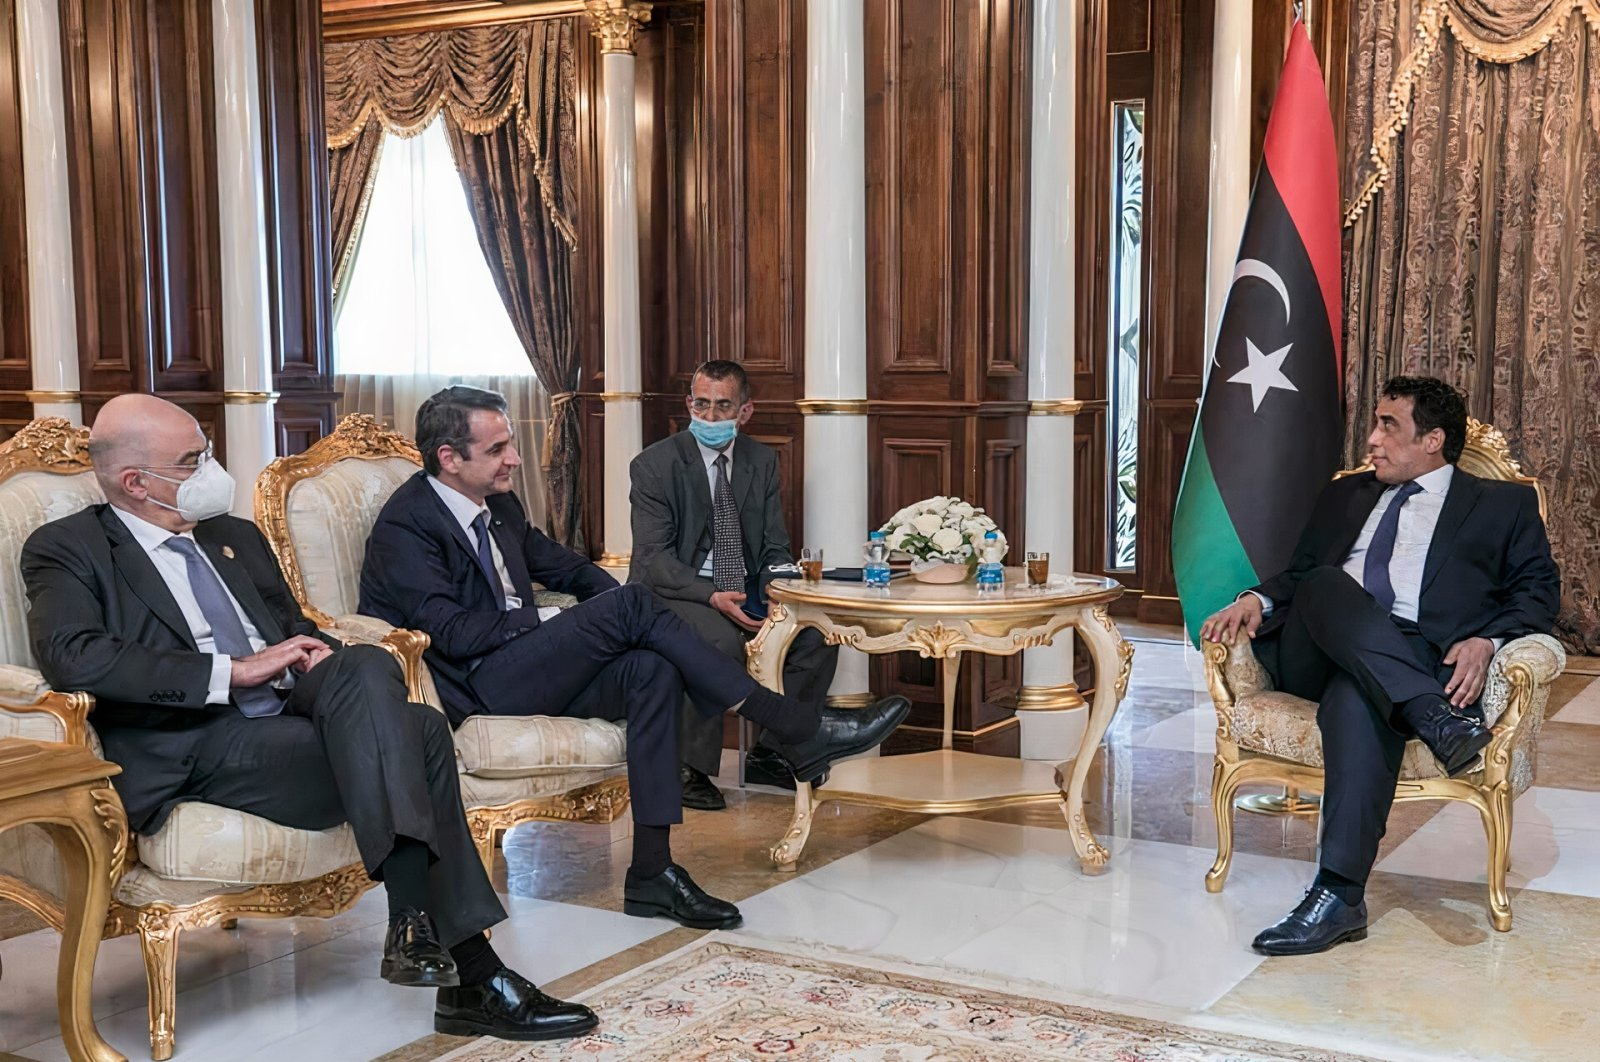 Libya's current head of the Presidential Council, Mohammad Younes Menfi, who had served for almost a year as Libya's ambassador in Greece (R) hosts Greece's Prime Minister Kyriakos Mitsotakis and the Greek Foreign Minister Nikos Dendias in the Libyan capital Tripoli on April 6, 2021. (Photo taken from Menfi's personal Facebook page)